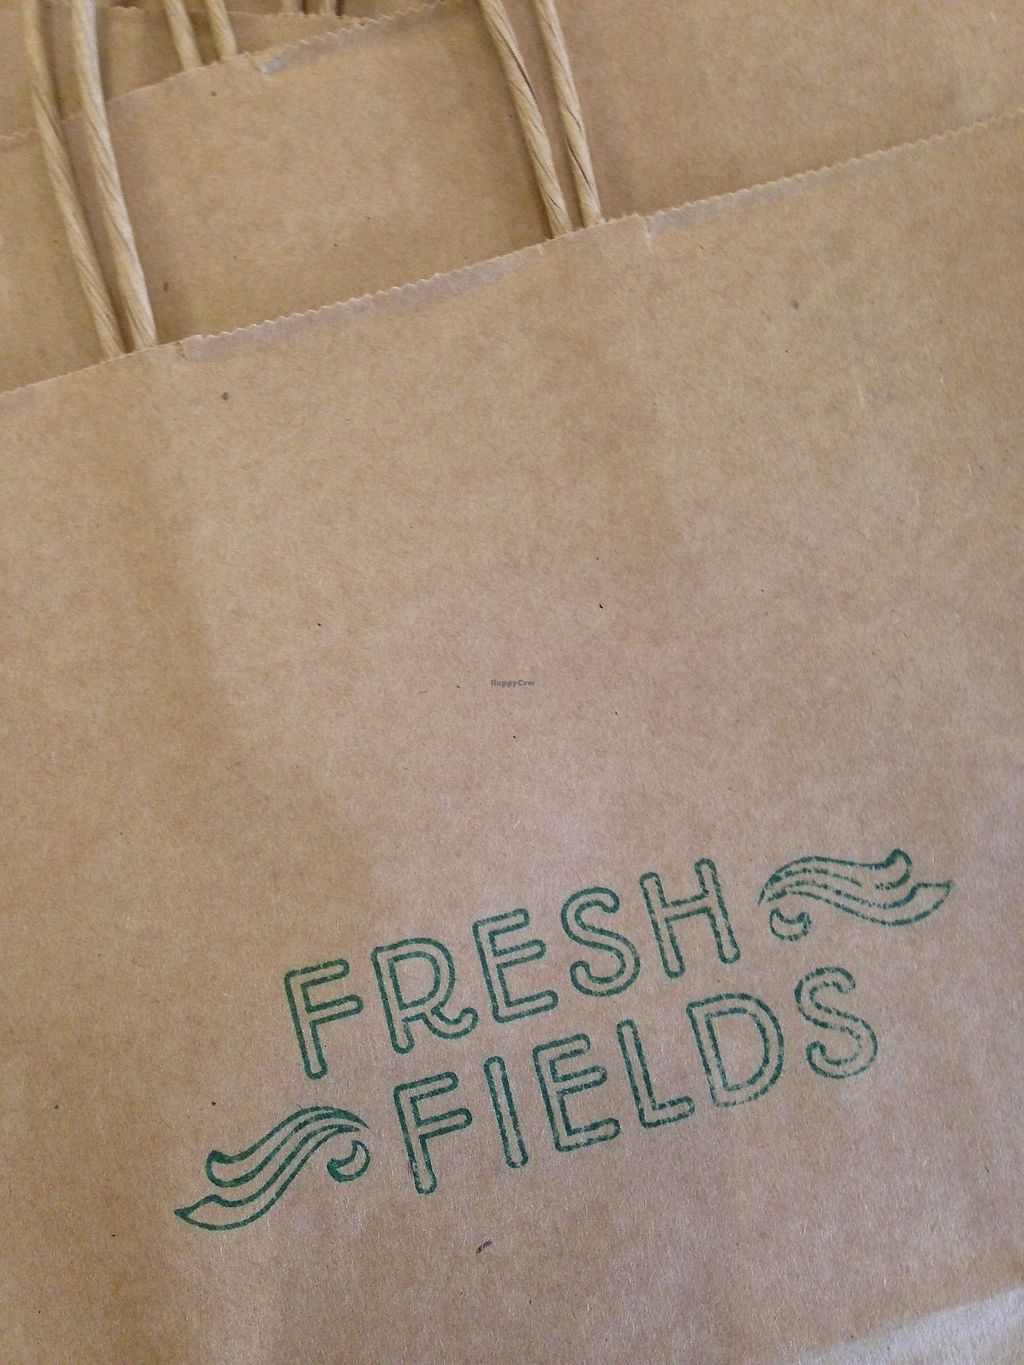 """Photo of Fresh Fields  by <a href=""""/members/profile/BlakeHoward"""">BlakeHoward</a> <br/>You might need this! <br/> January 11, 2018  - <a href='/contact/abuse/image/32475/345424'>Report</a>"""